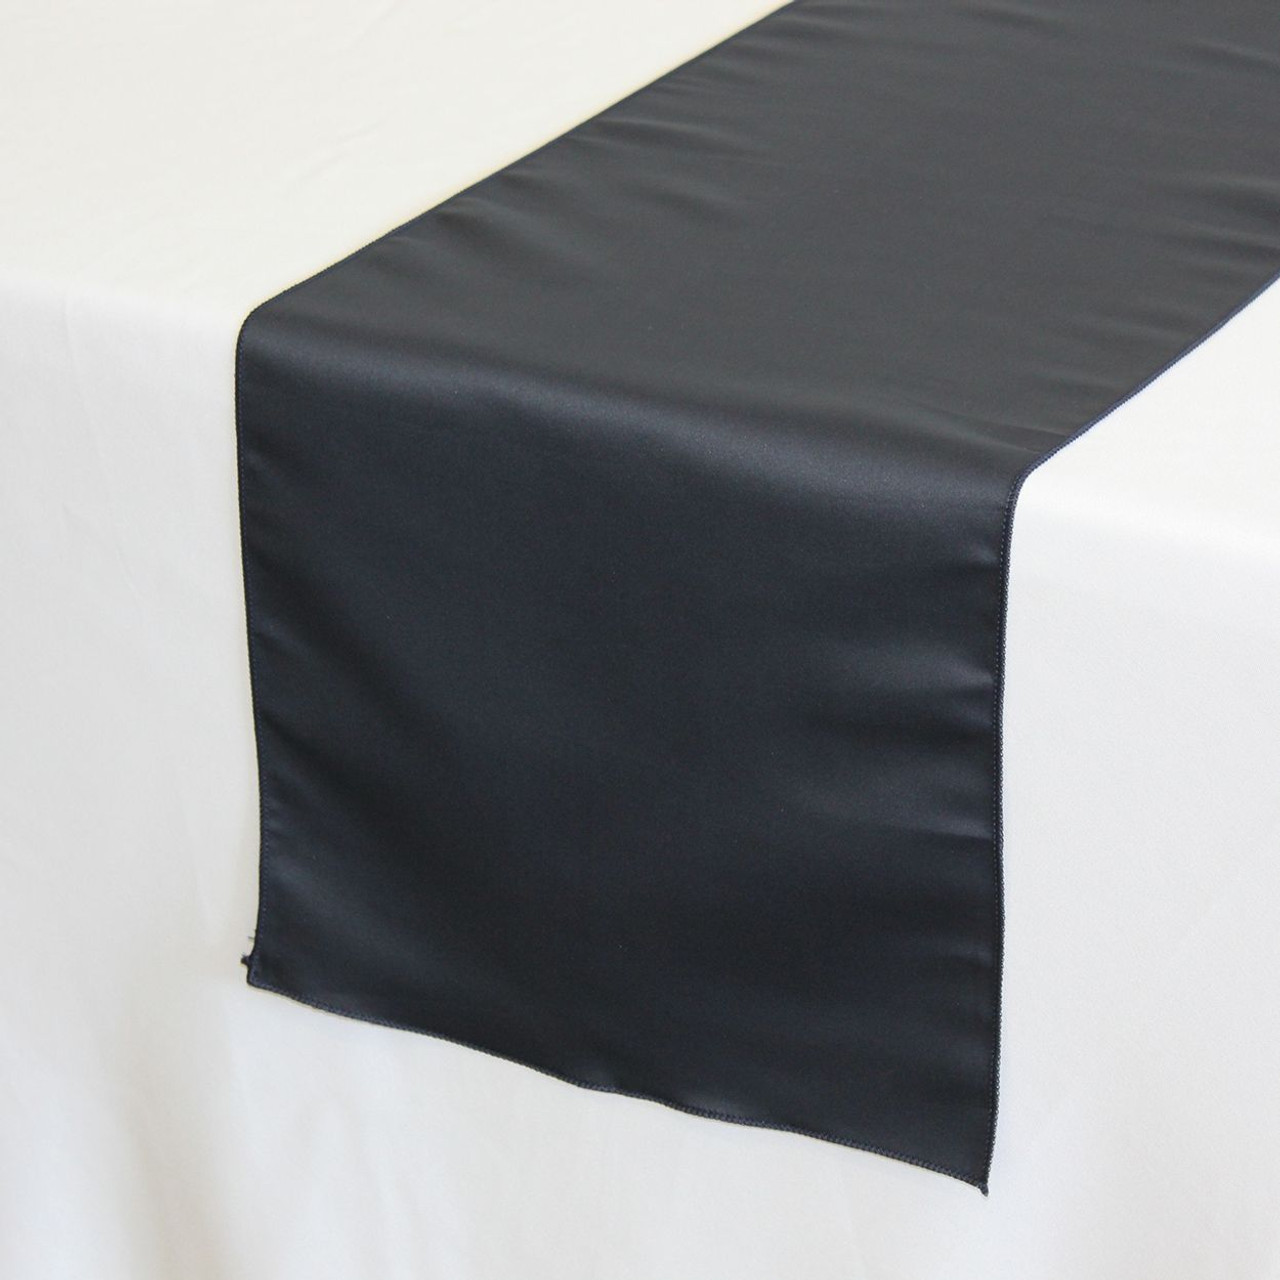 f7023678eaf08 ... 14 x 108 inch L'amour Satin Table Runner in Navy Blue on a white